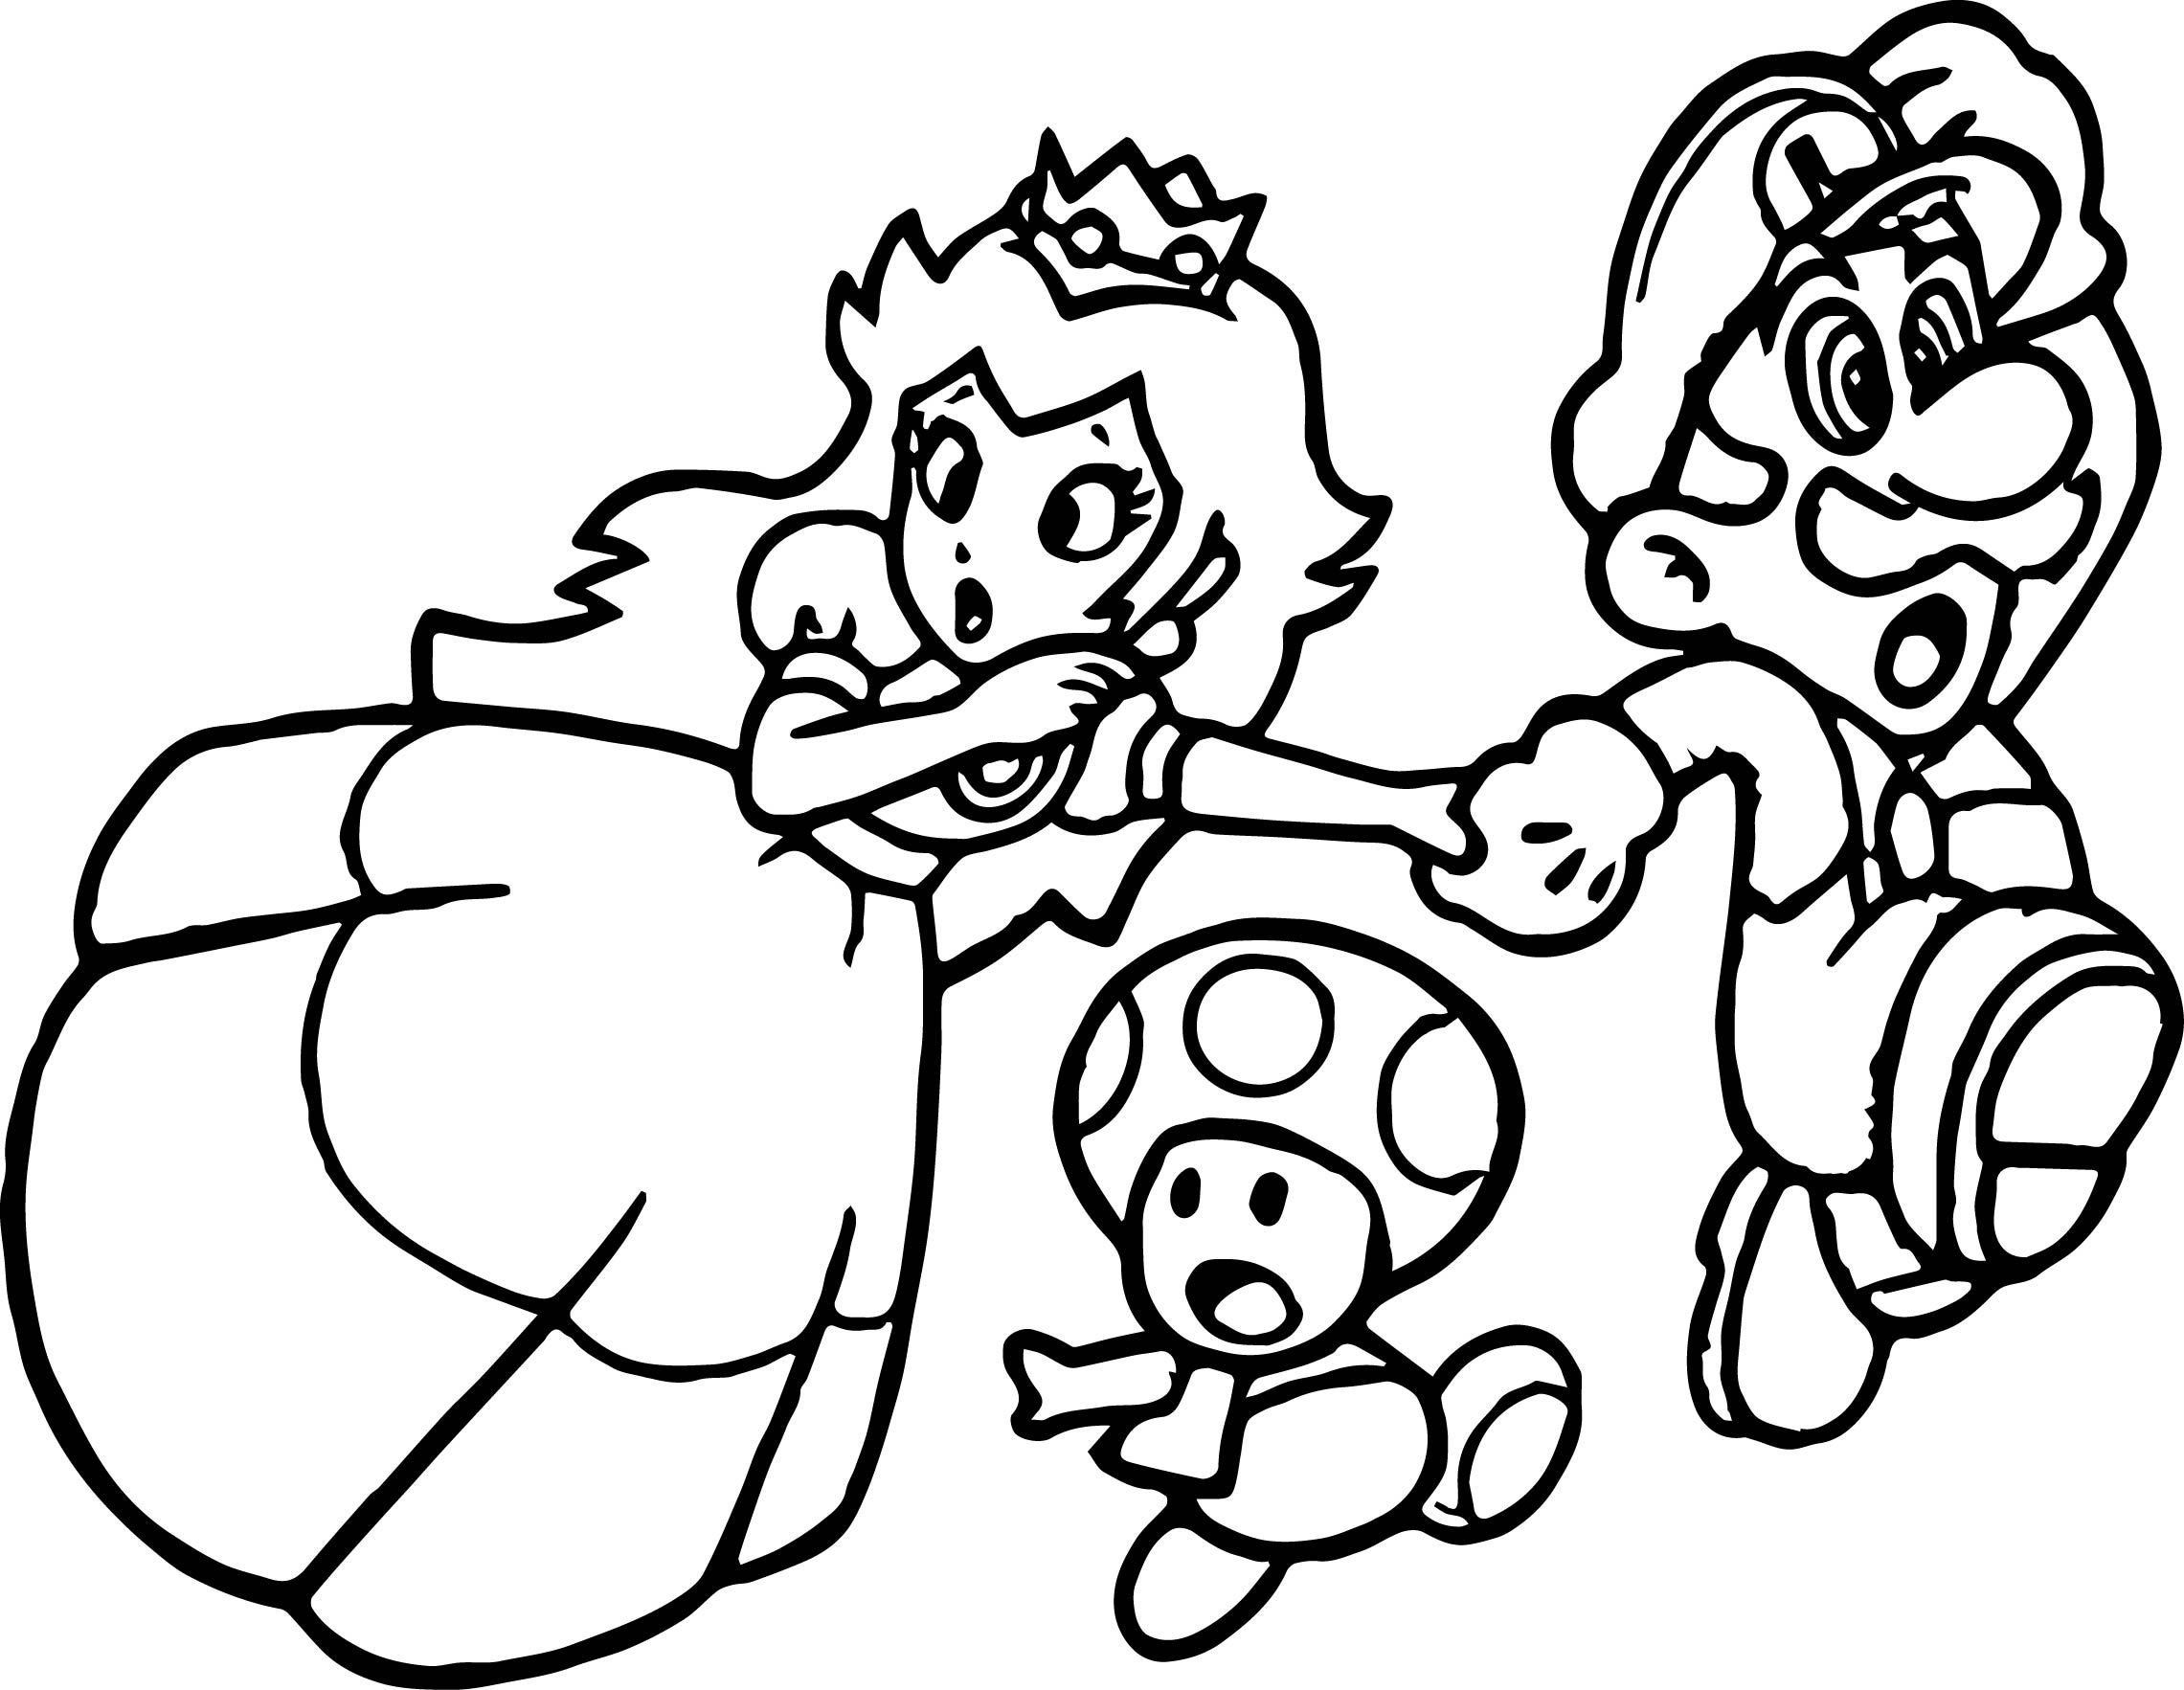 Super Mario Coloring Pages Lovely Super Mario Princess Mushroom Coloring Page In 2020 Super Mario Coloring Pages Mario Coloring Pages Cartoon Coloring Pages